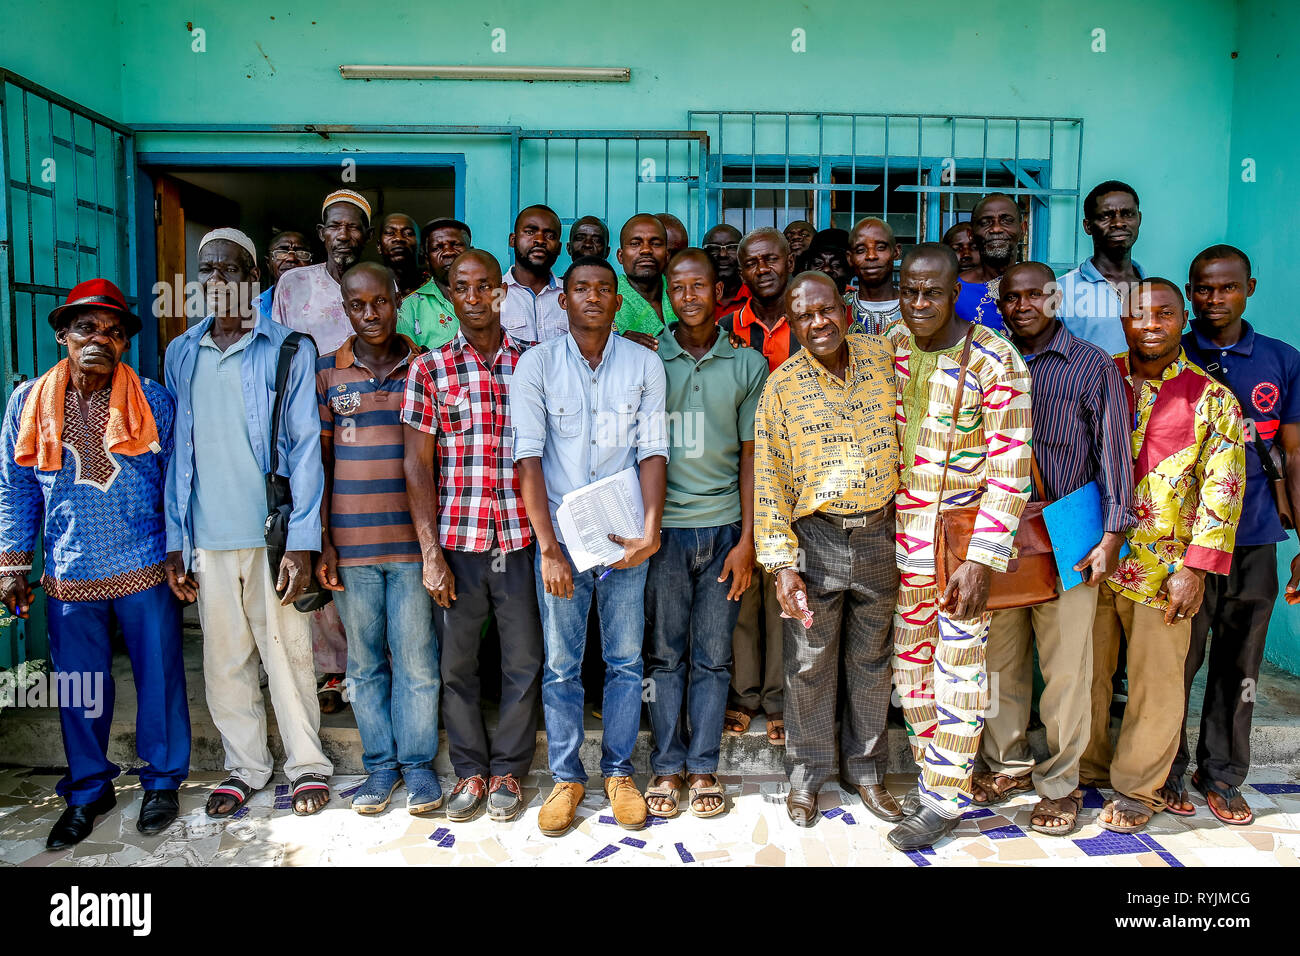 Cocoa planters' cooperative members in Agboville, Ivory Coast. Stock Photo